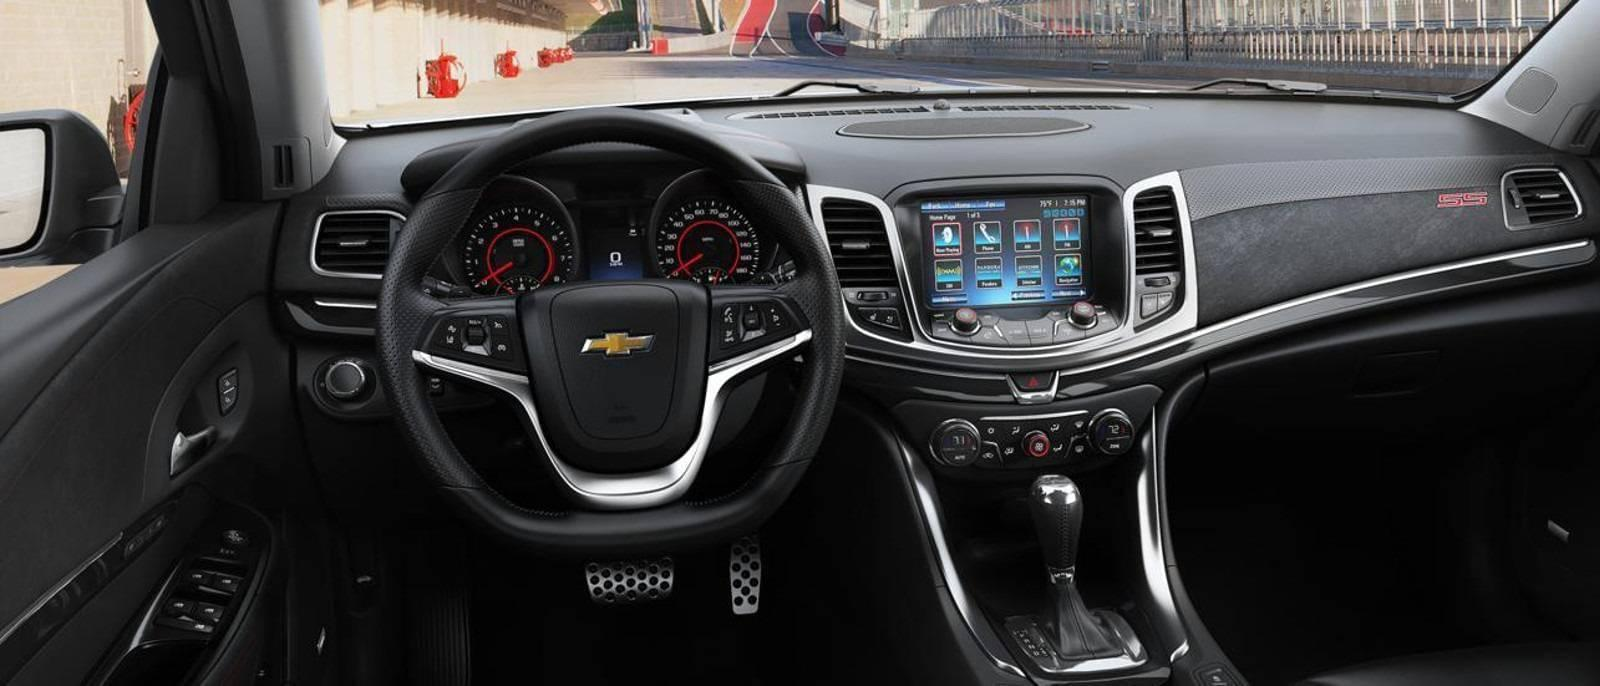 2017 Chevrolet Ss Info Price Mpg Trims Exterior Performance